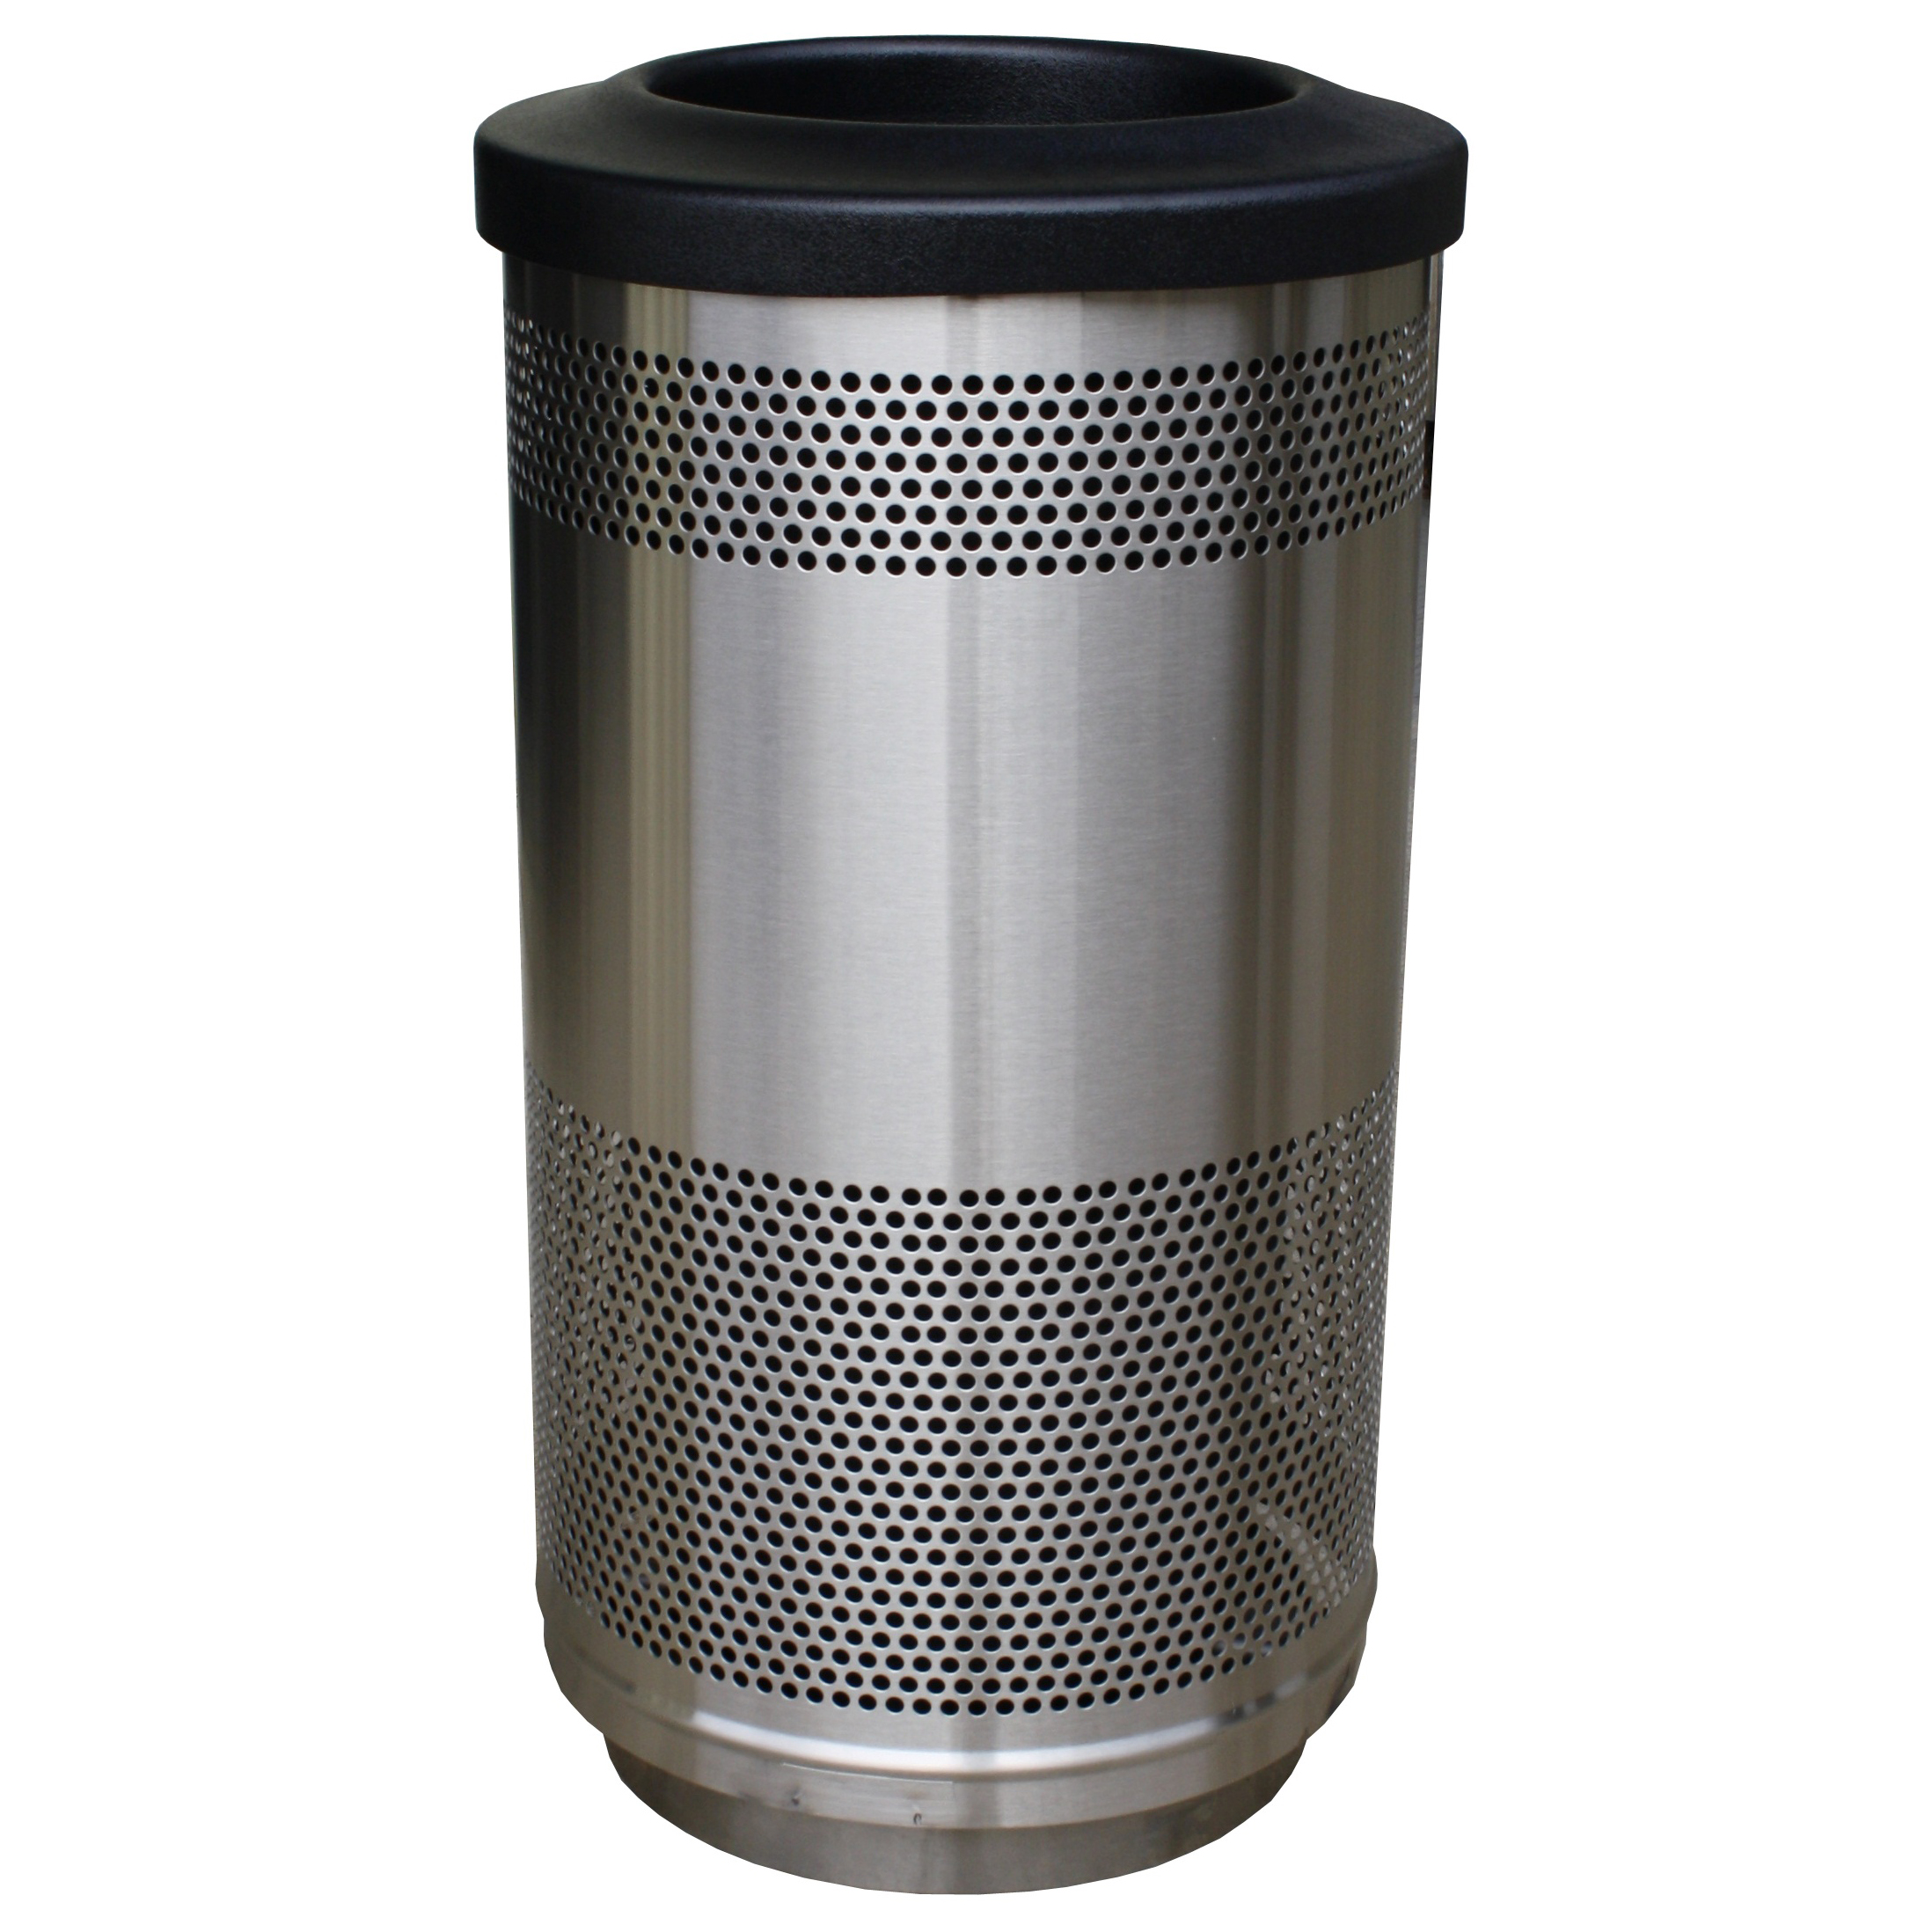 Aluminium Garbage Cans : Perforated steel waste basket gallon metal trash can